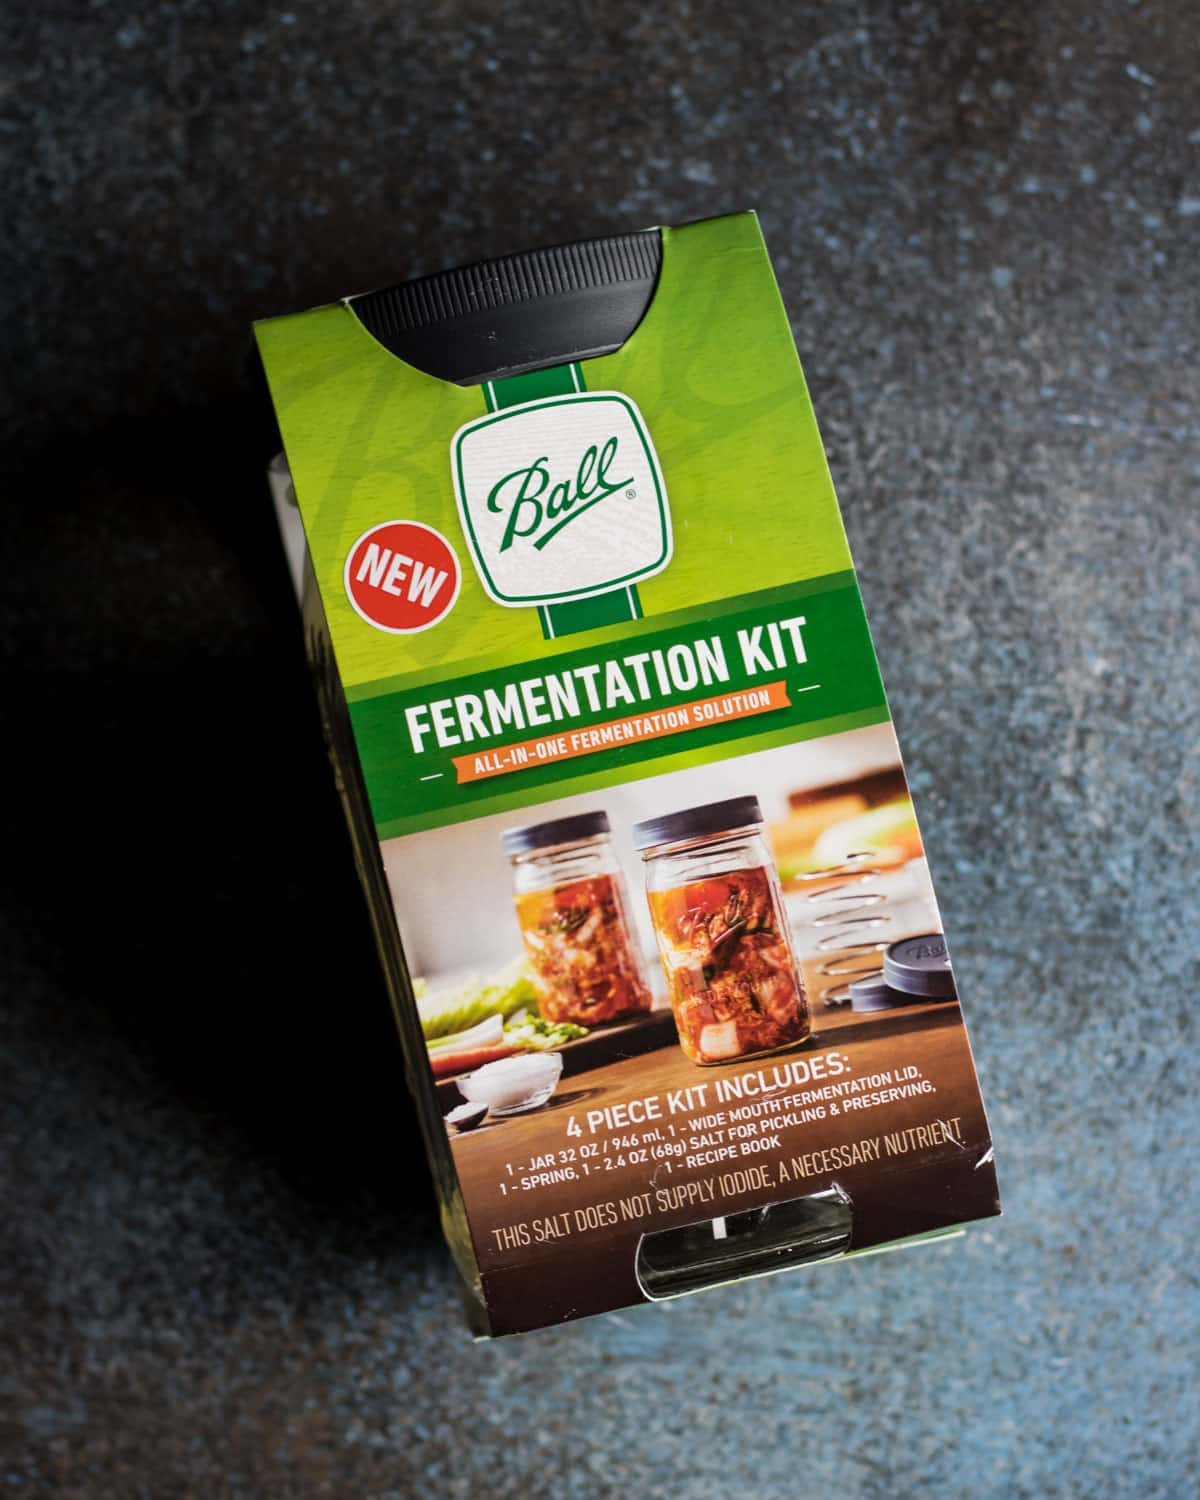 ball fermentation kit